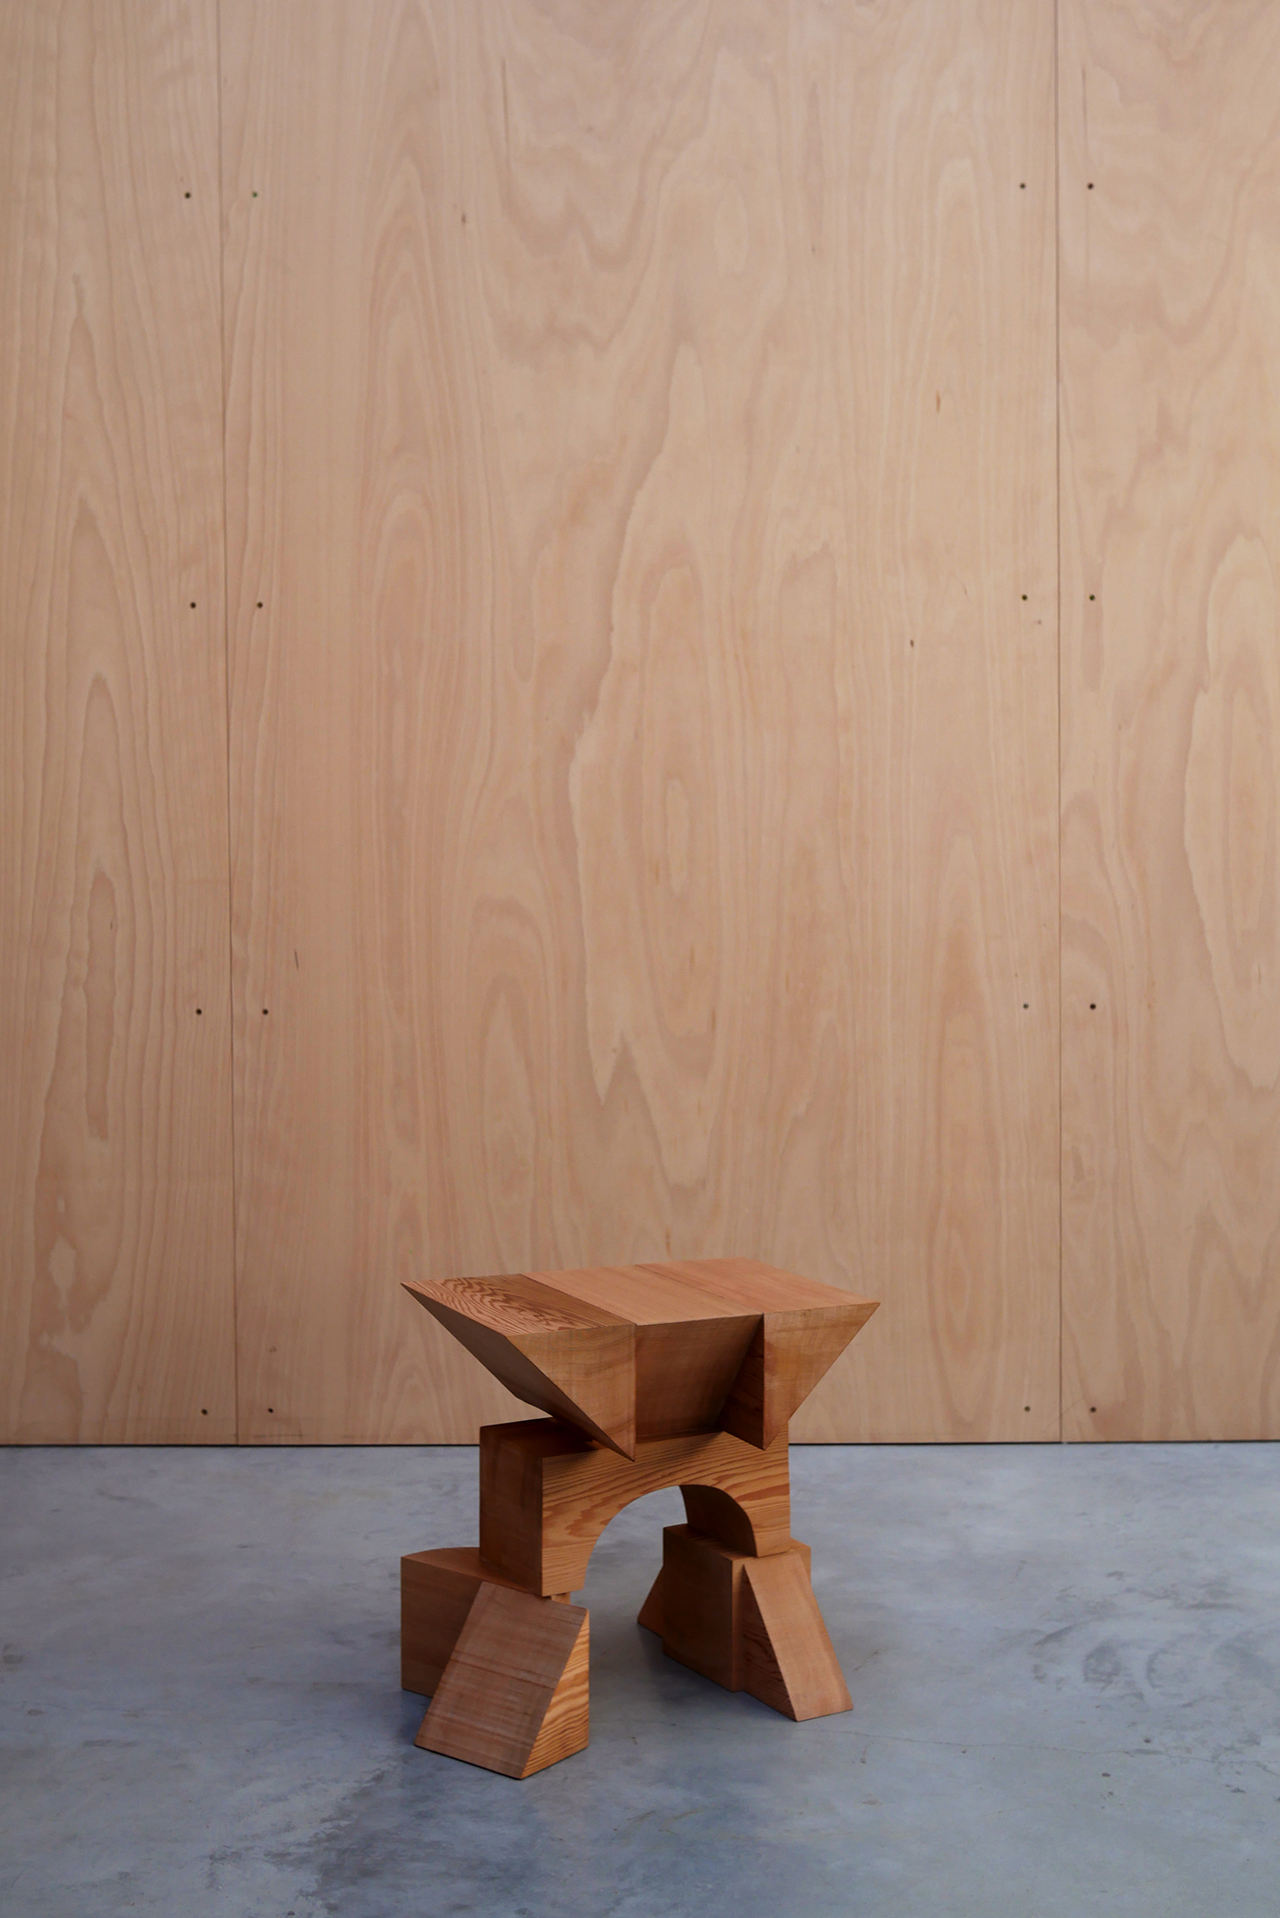 asymmetrical red cedar chair on concrete floor in front of wood wall